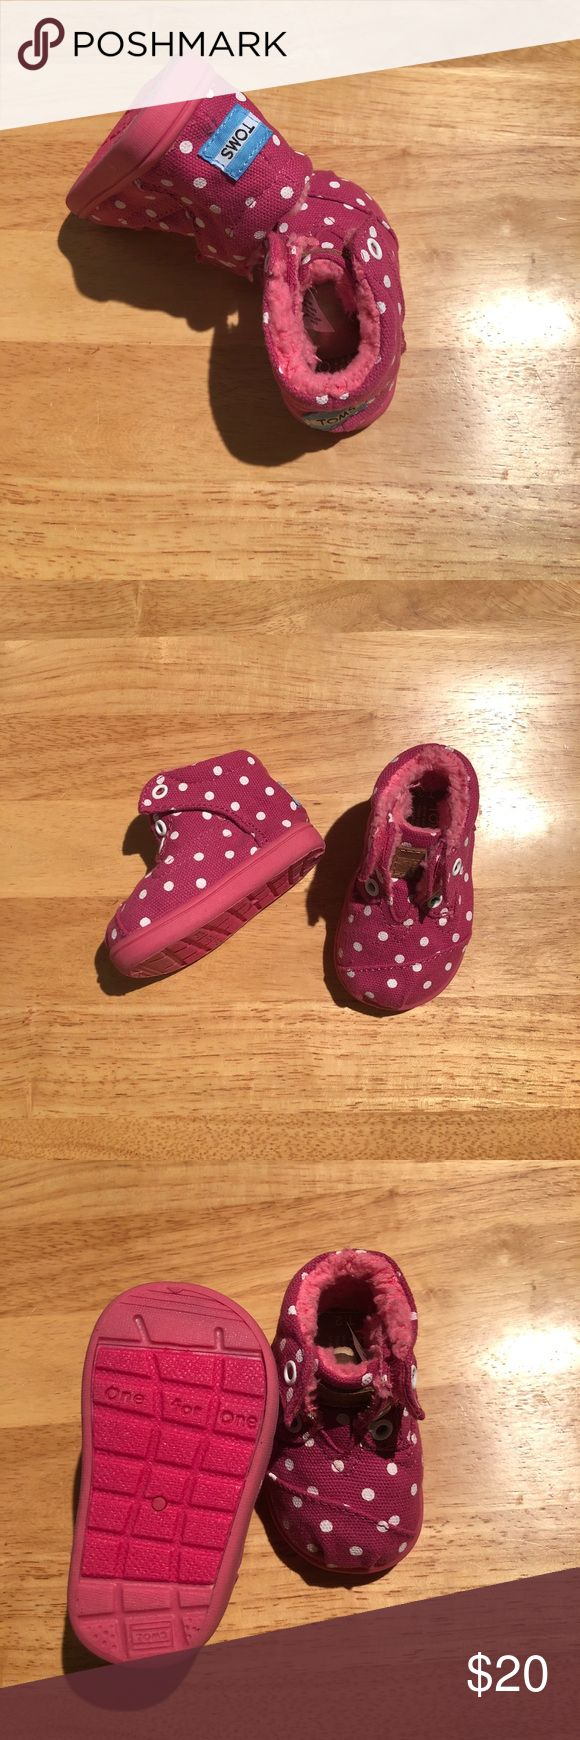 PINK TOMS BOOTS Pink polka dot toms with a fuzzy warm inside!! Size infant 3 NEW WITHOUT TAGS!!! Never been worn! Has Velcro sides for easy access for little baby toes ☺️ Toms Shoes Baby & Walker